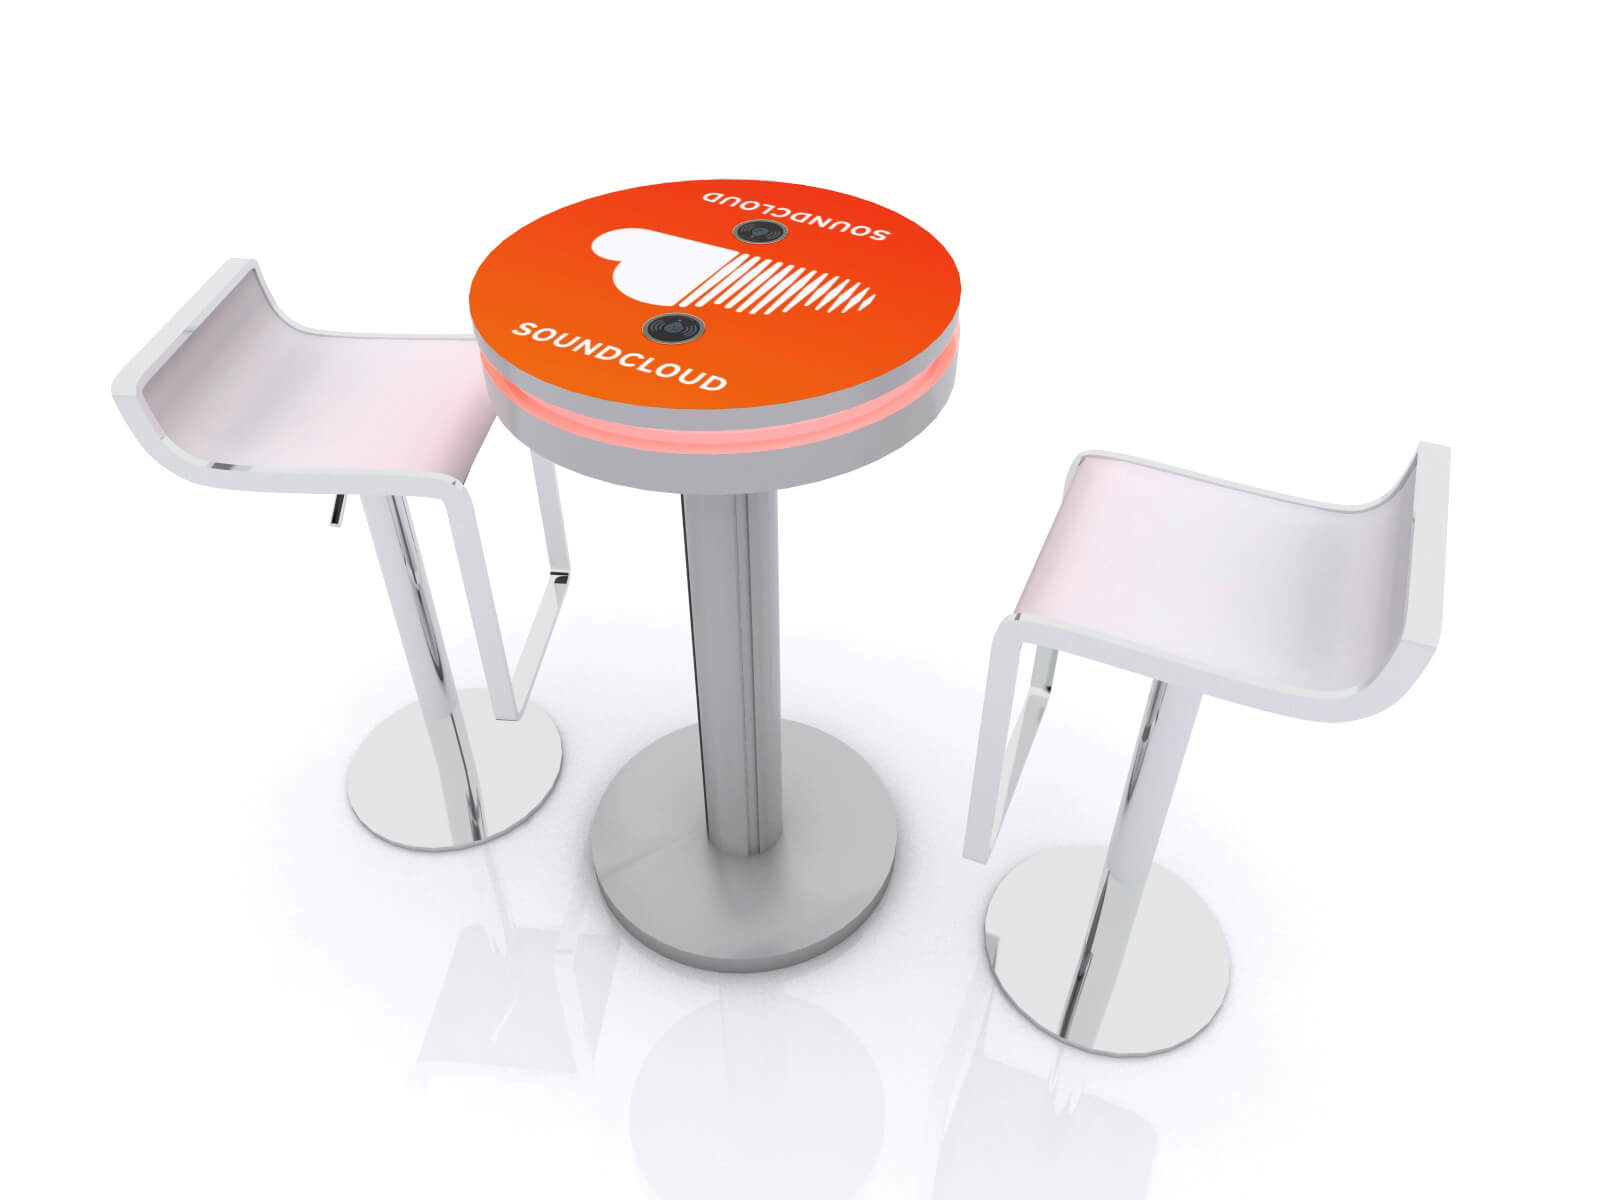 MOD-1462 Wireless Event Charging Station - image 3